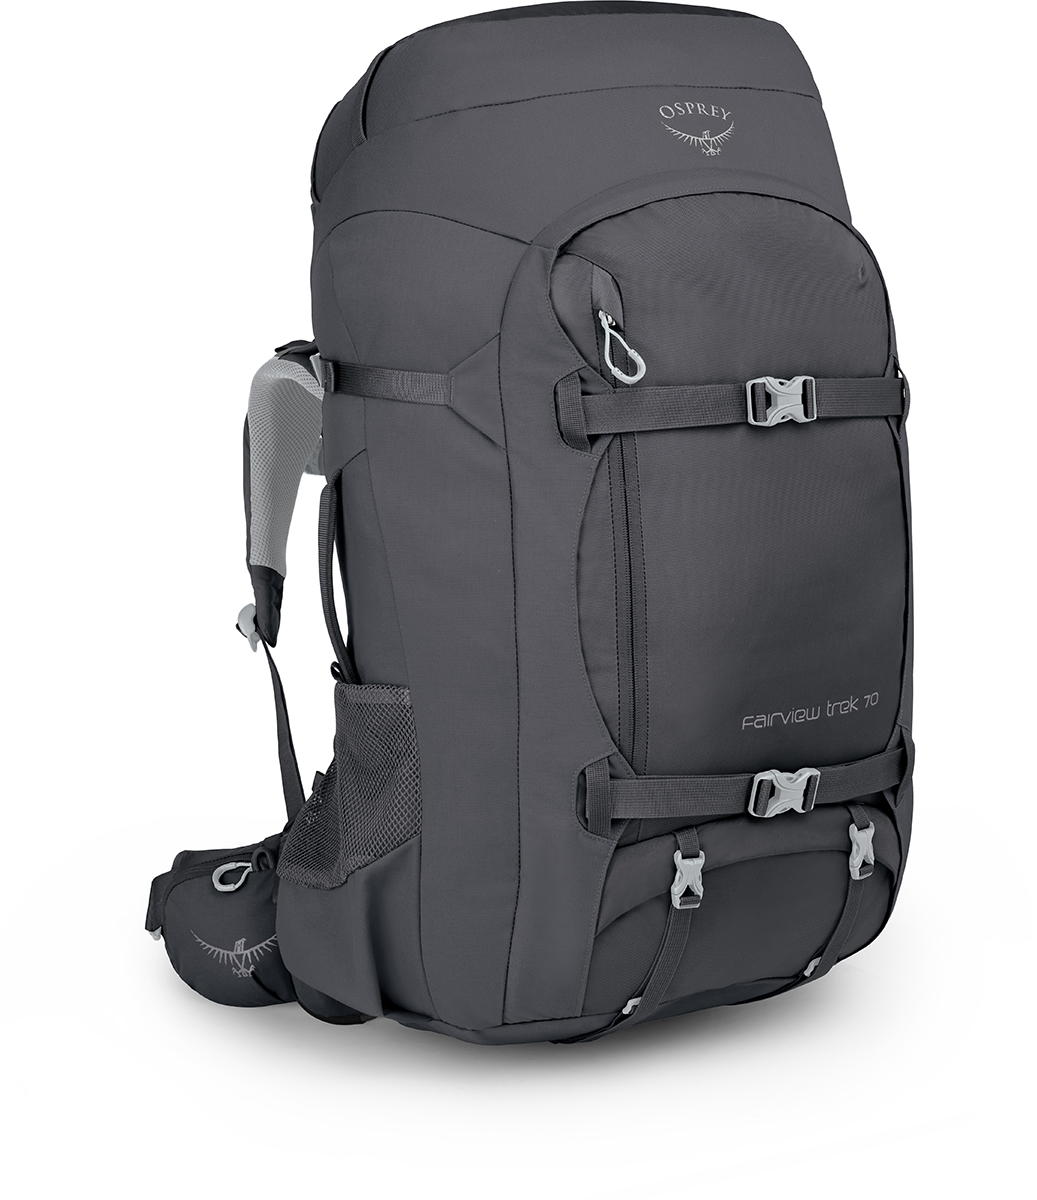 Osprey Fairview Trek 70 Rucksack | Travel bags